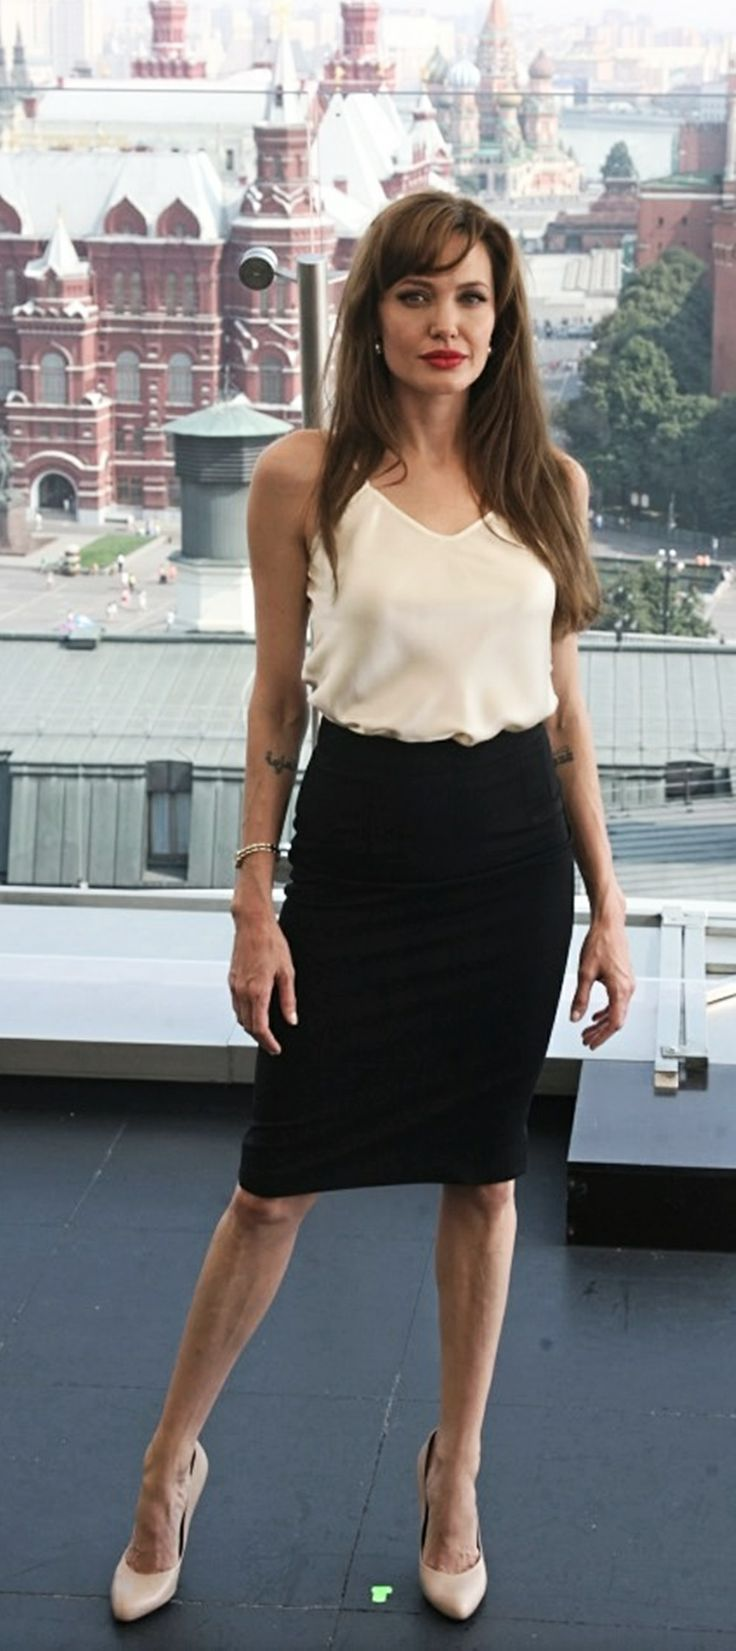 Angelina Jolie. Love her style!~ so Simple, Classic and Chic.